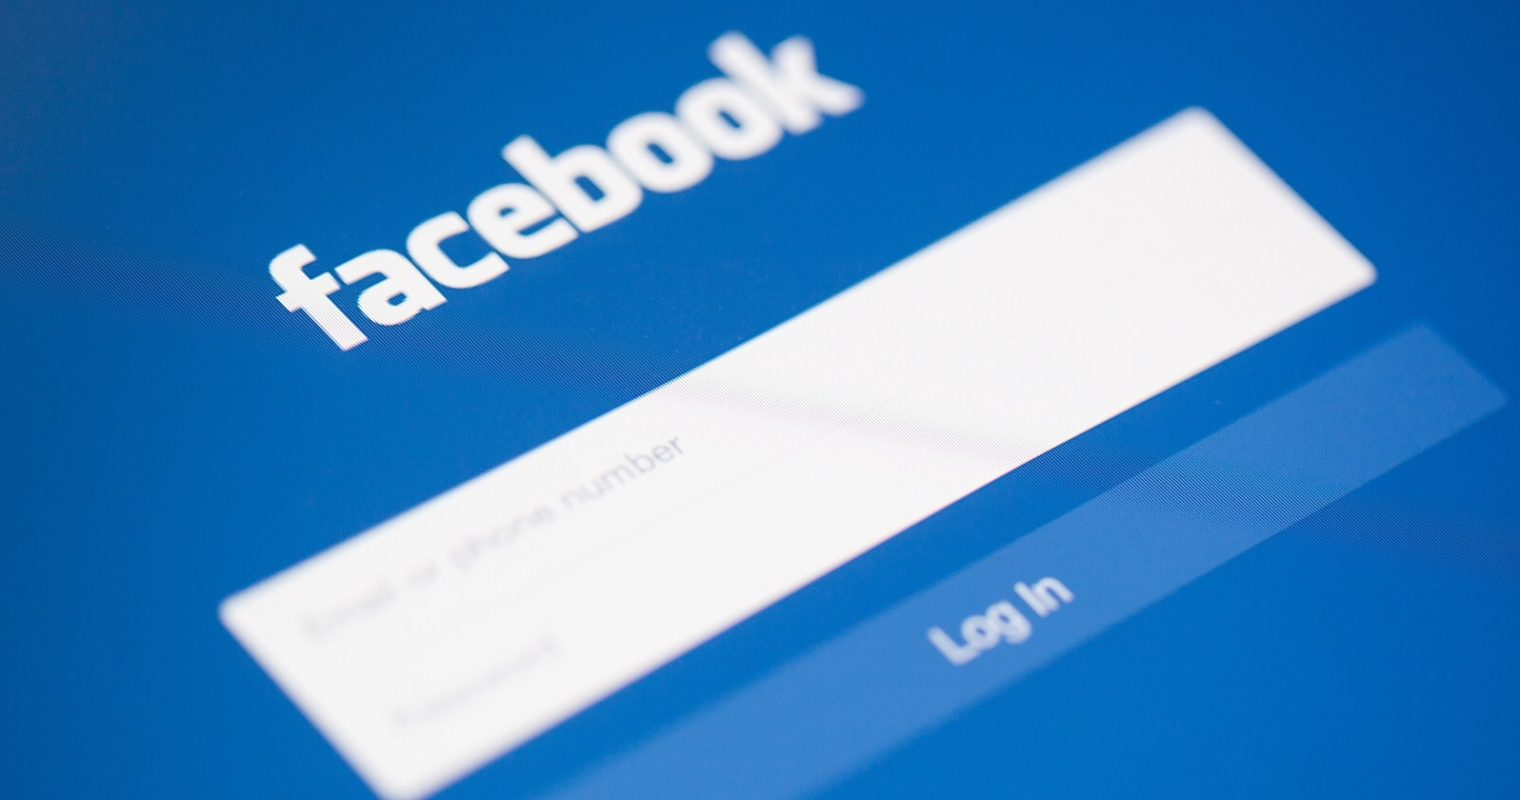 Facebook Users Have to Re-Confirm App Permissions Every 90 Days